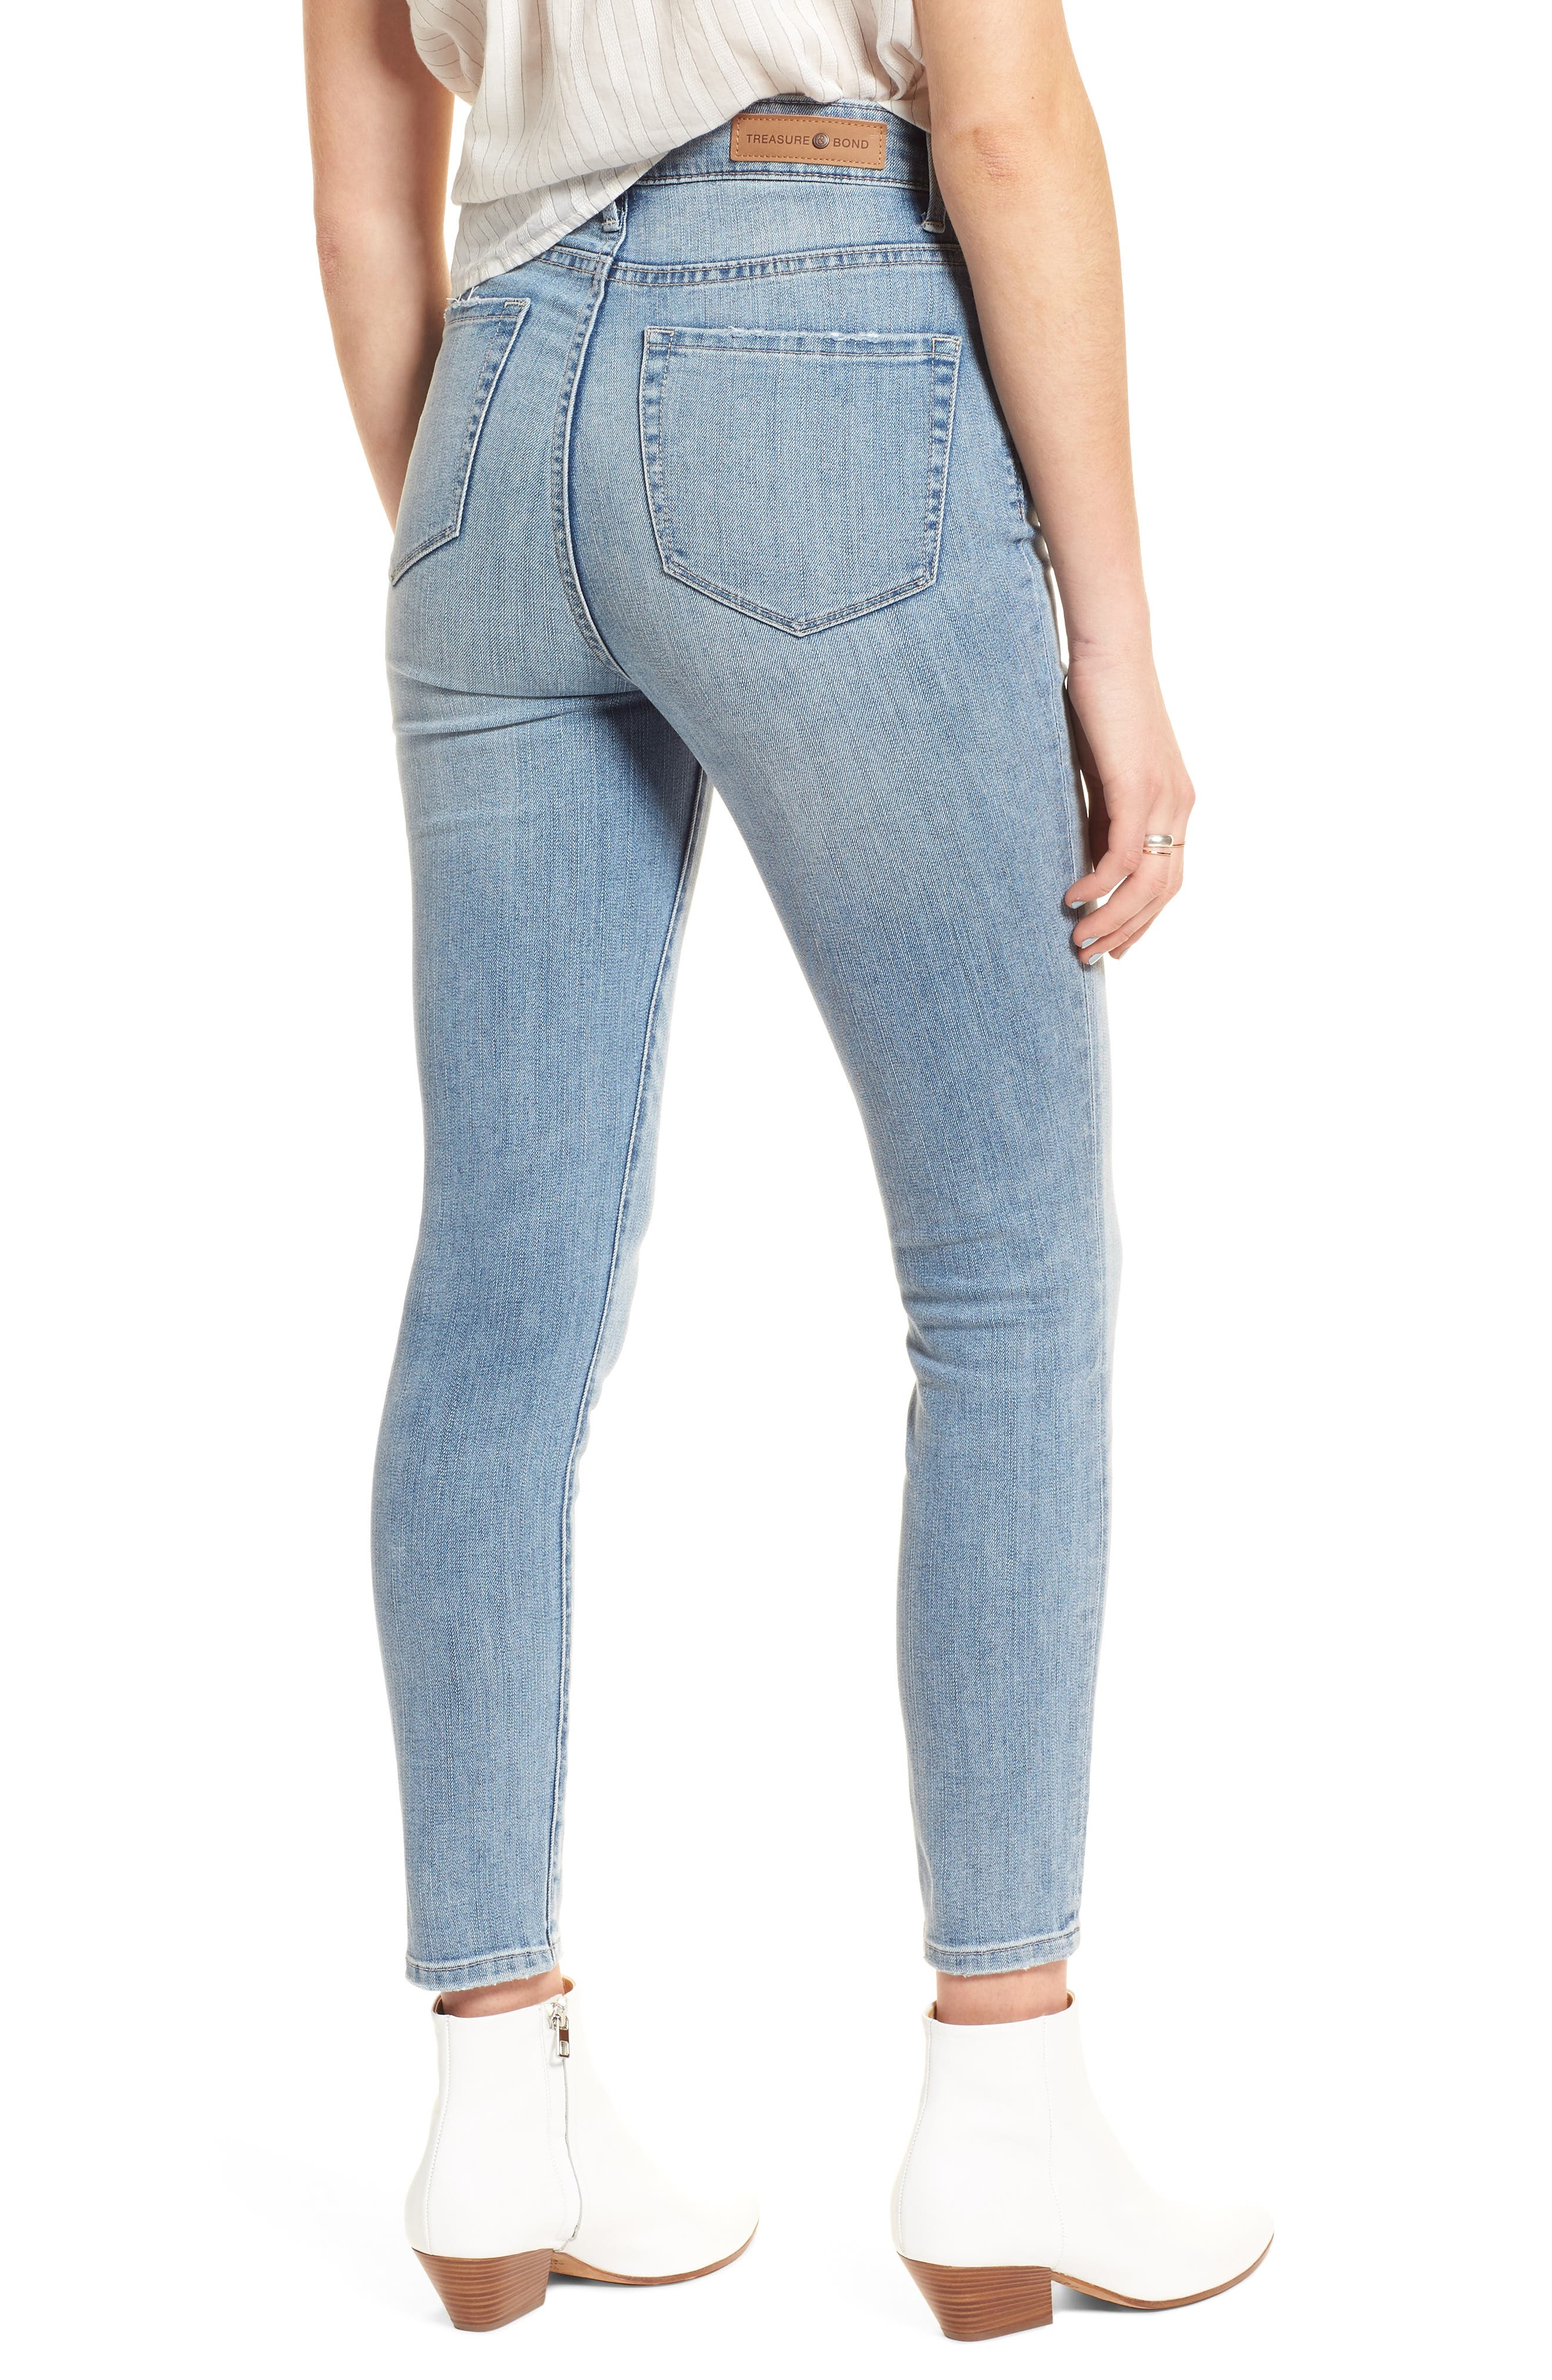 Charity High Waist Crop Skinny Jeans,                             Alternate thumbnail 2, color,                             420